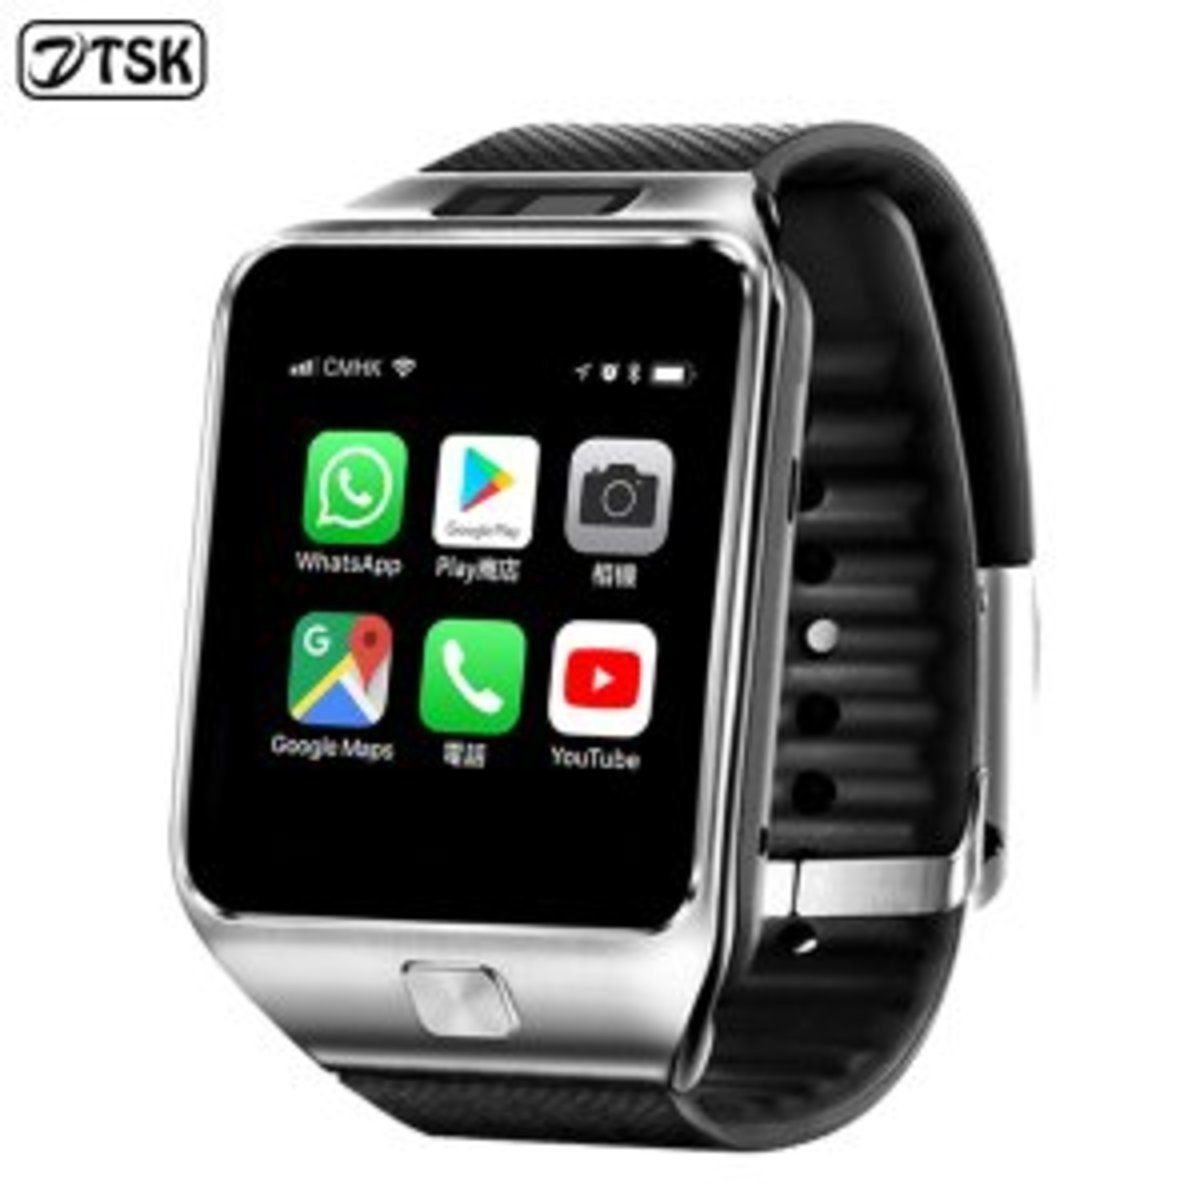 SW6 Smart Watch Phone (Black) (Android)